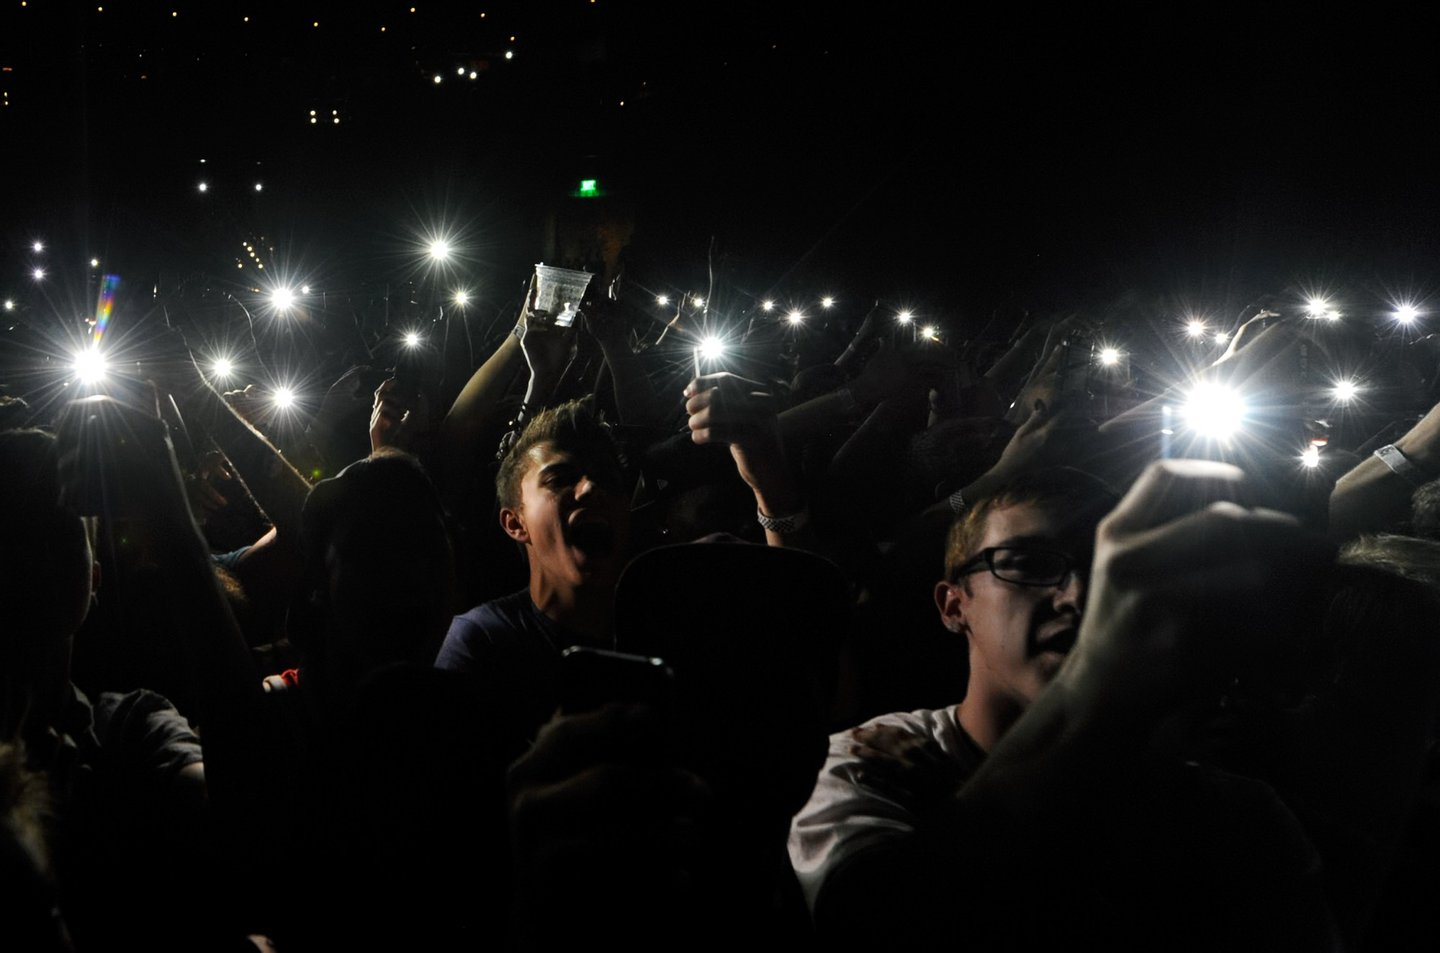 """LAS VEGAS, NV - MAY 02: Fans hold up phones with lights as actor/comedian Donald Glover as recording artist Childish Gambino performs at The Chelsea at The Cosmopolitan of Las Vegas during his Deep Web tour in support of the album """"because the internet"""" on May 2, 2014 in Las Vegas, Nevada. (Photo by Ethan Miller/Getty Images)"""